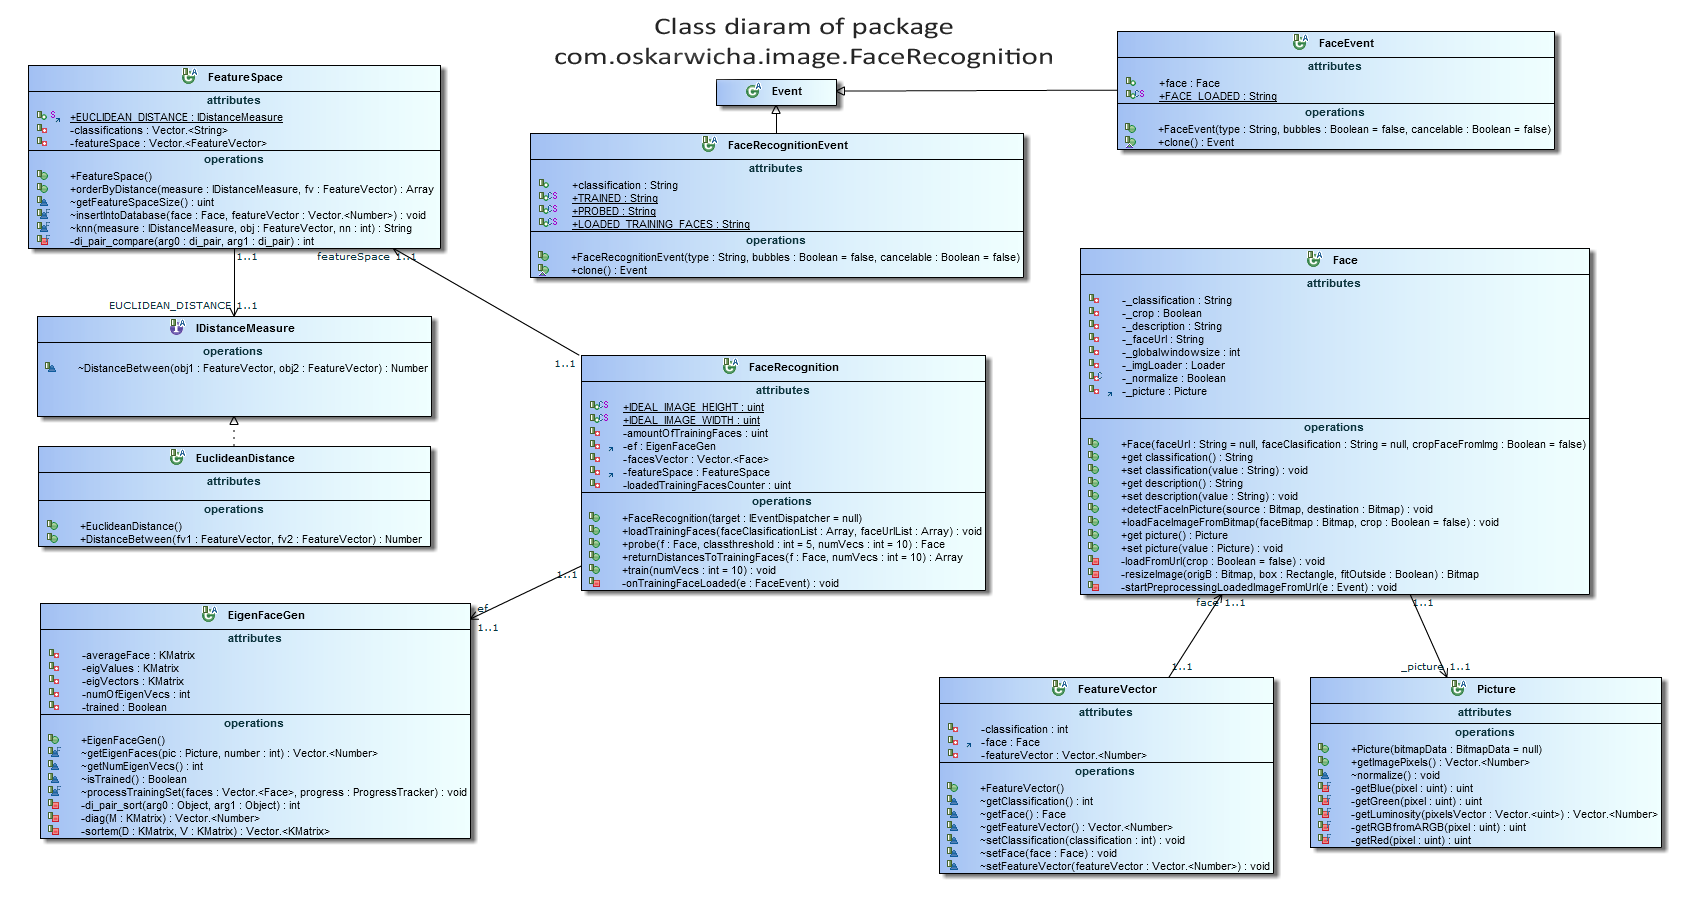 Google code archive long term storage for google code project facerecognitionlibumlrev9g class diagram for some of classes in package comoskarwichaagefacerecognition type docs opsys all ccuart Image collections